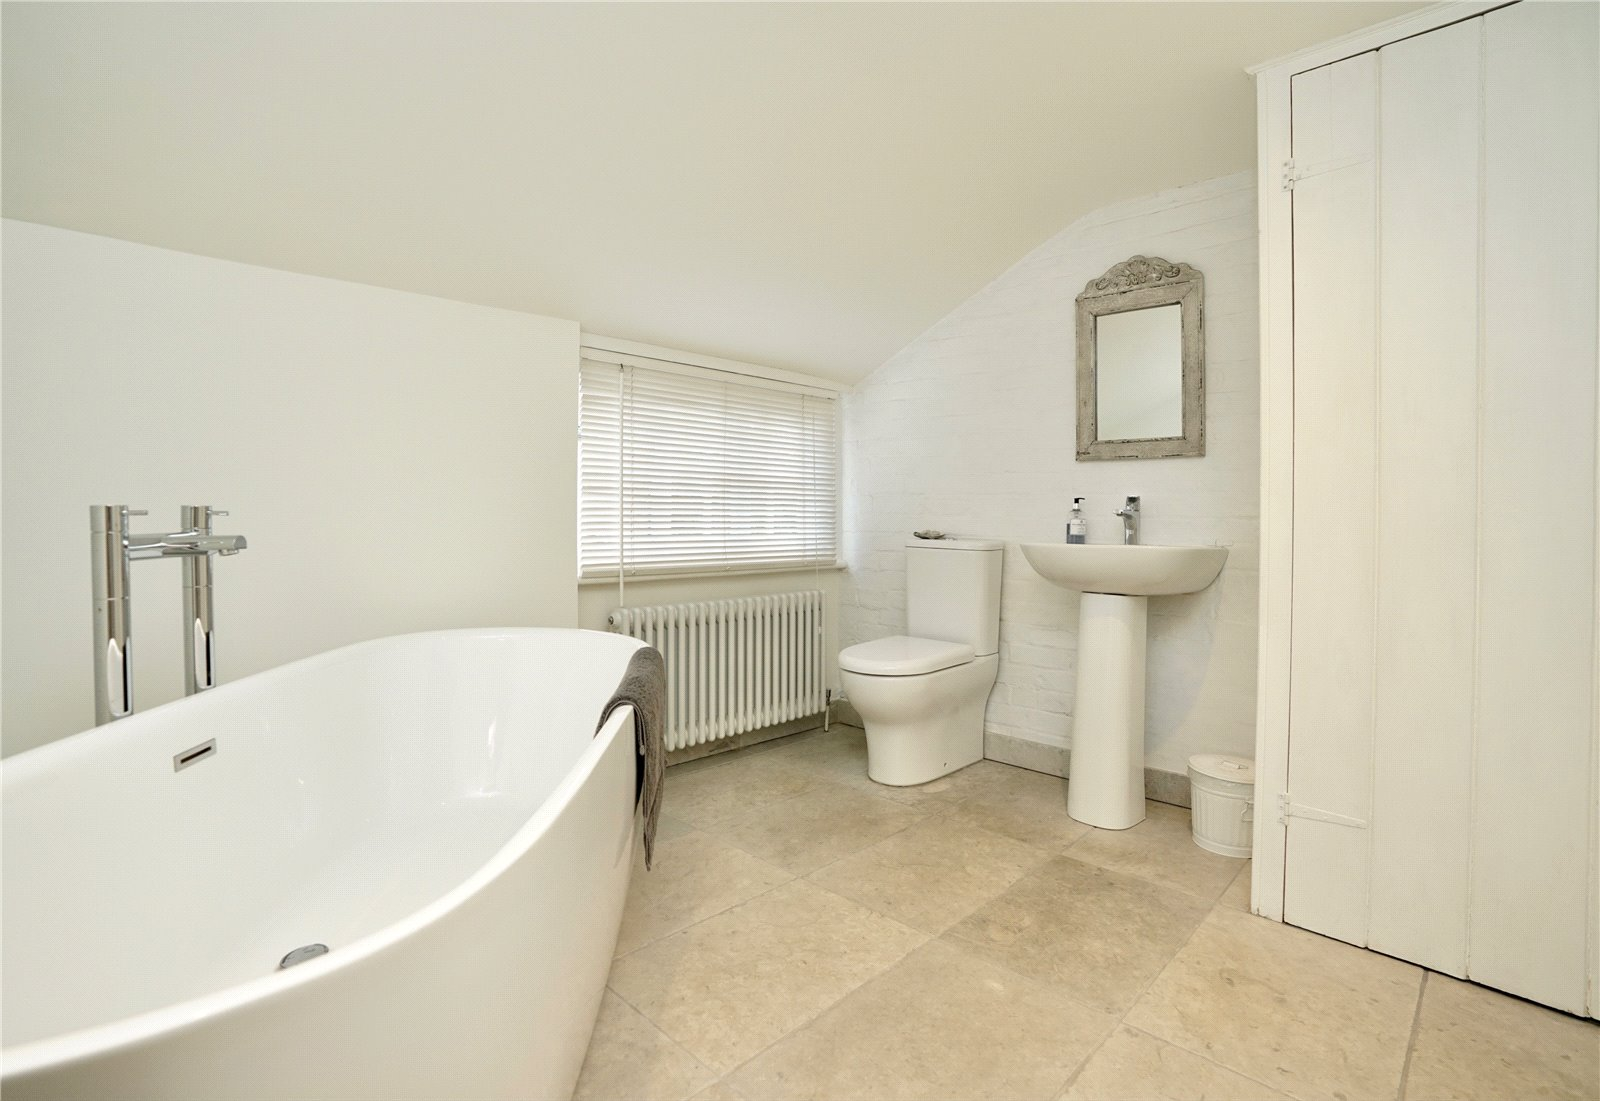 4 bed house for sale in Buckden  - Property Image 10